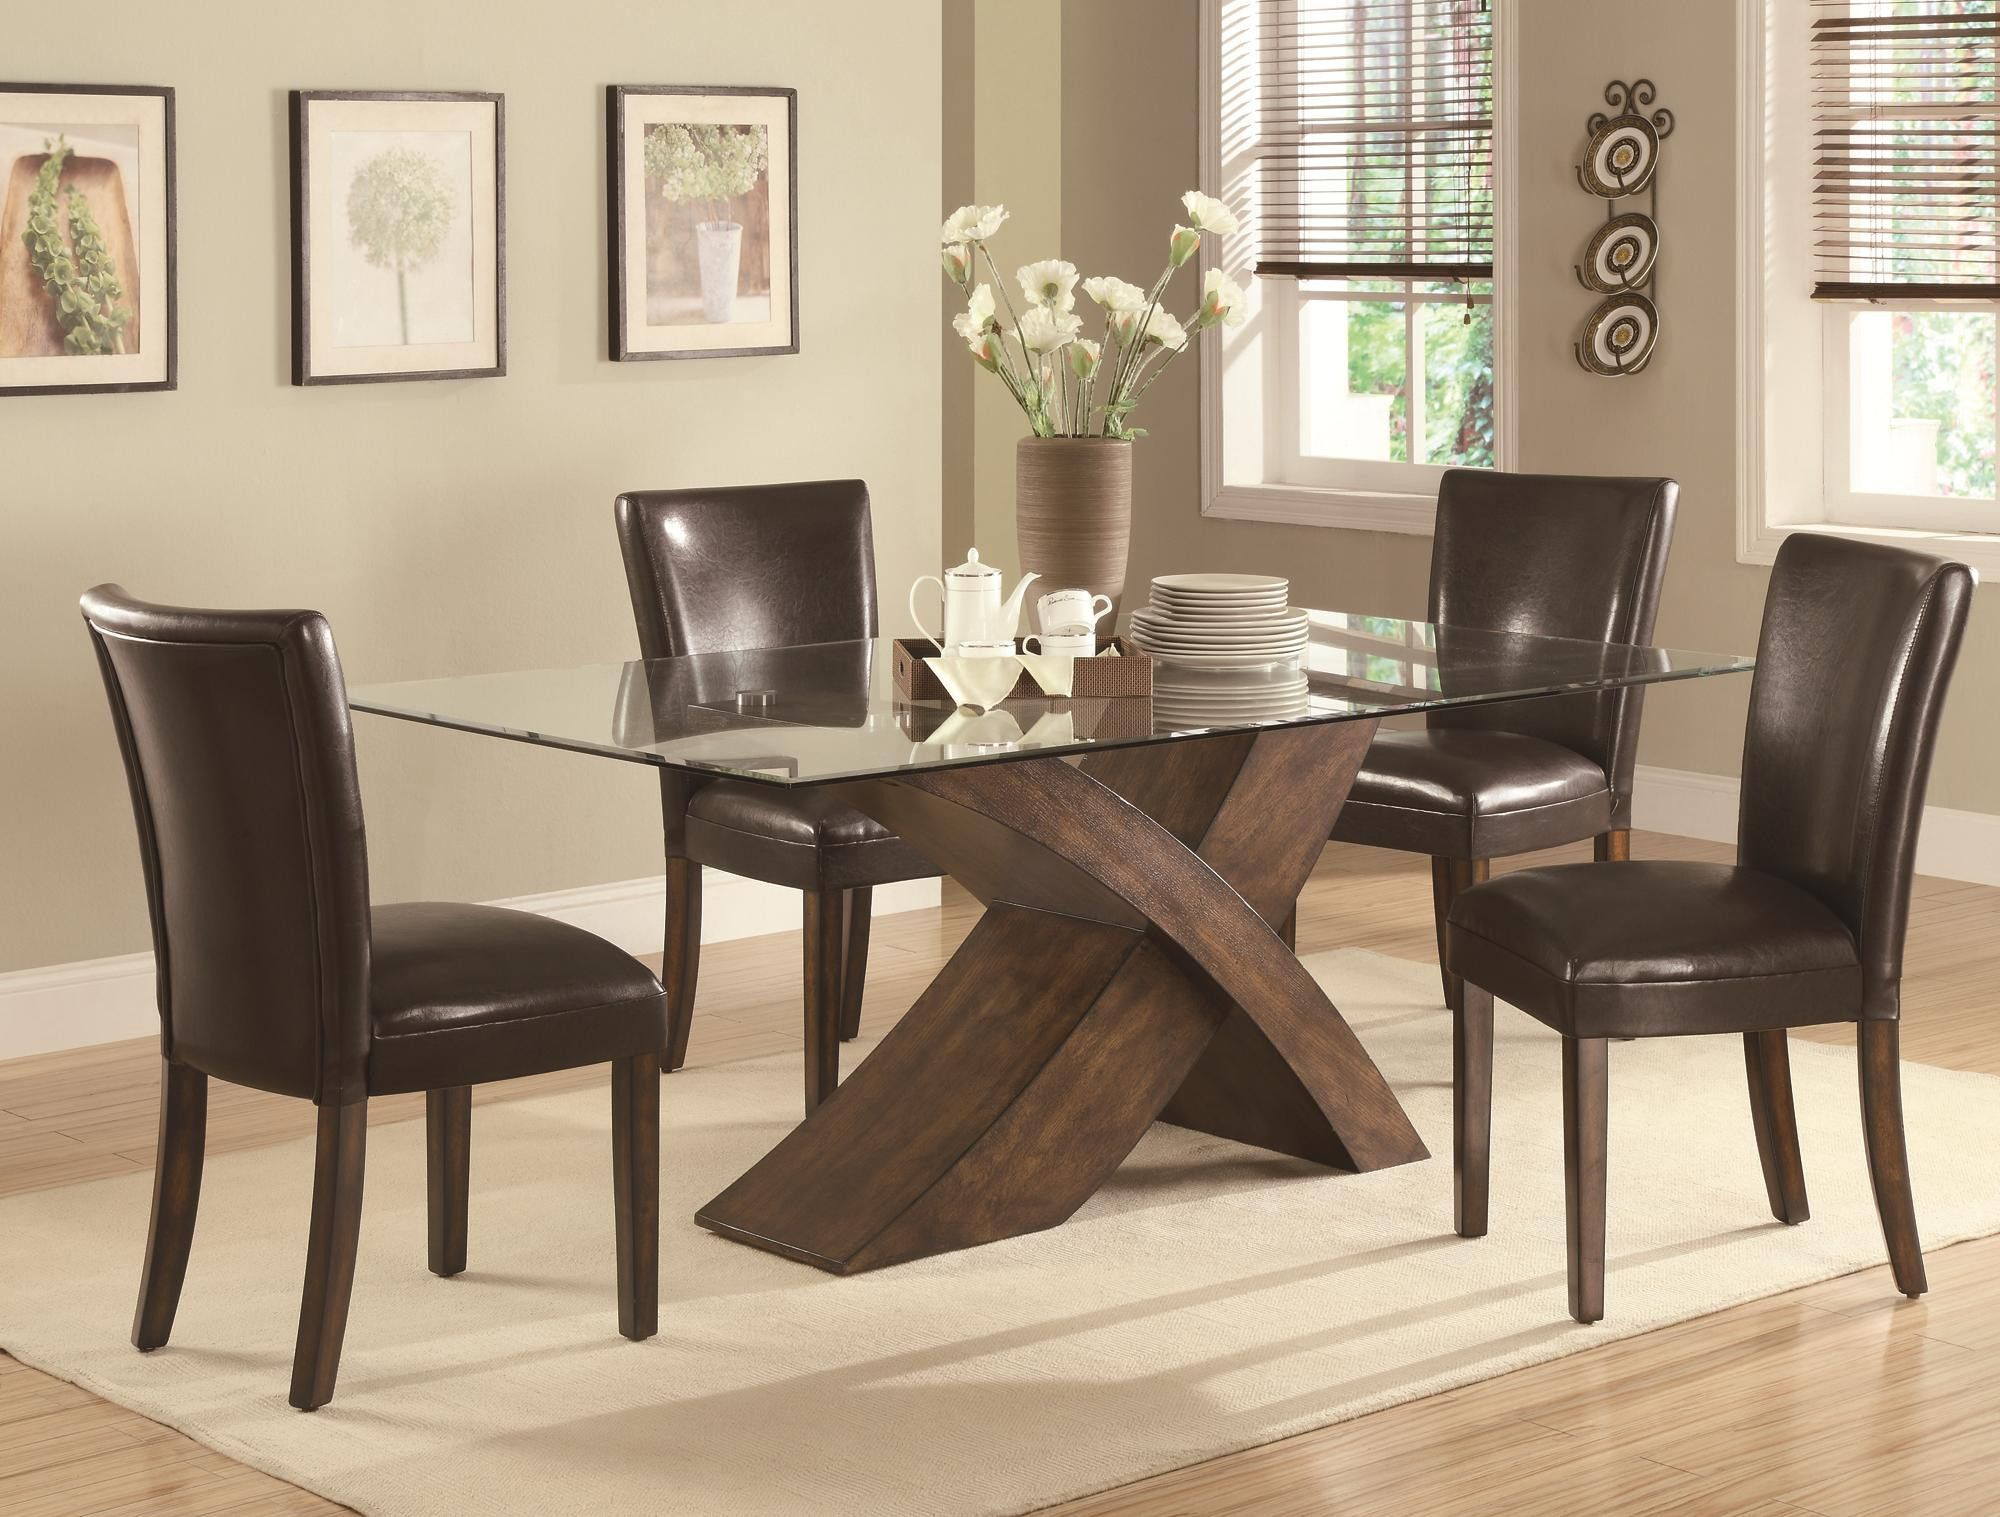 The Nessa Large Scaled X Base Dining Table With Glass Top By